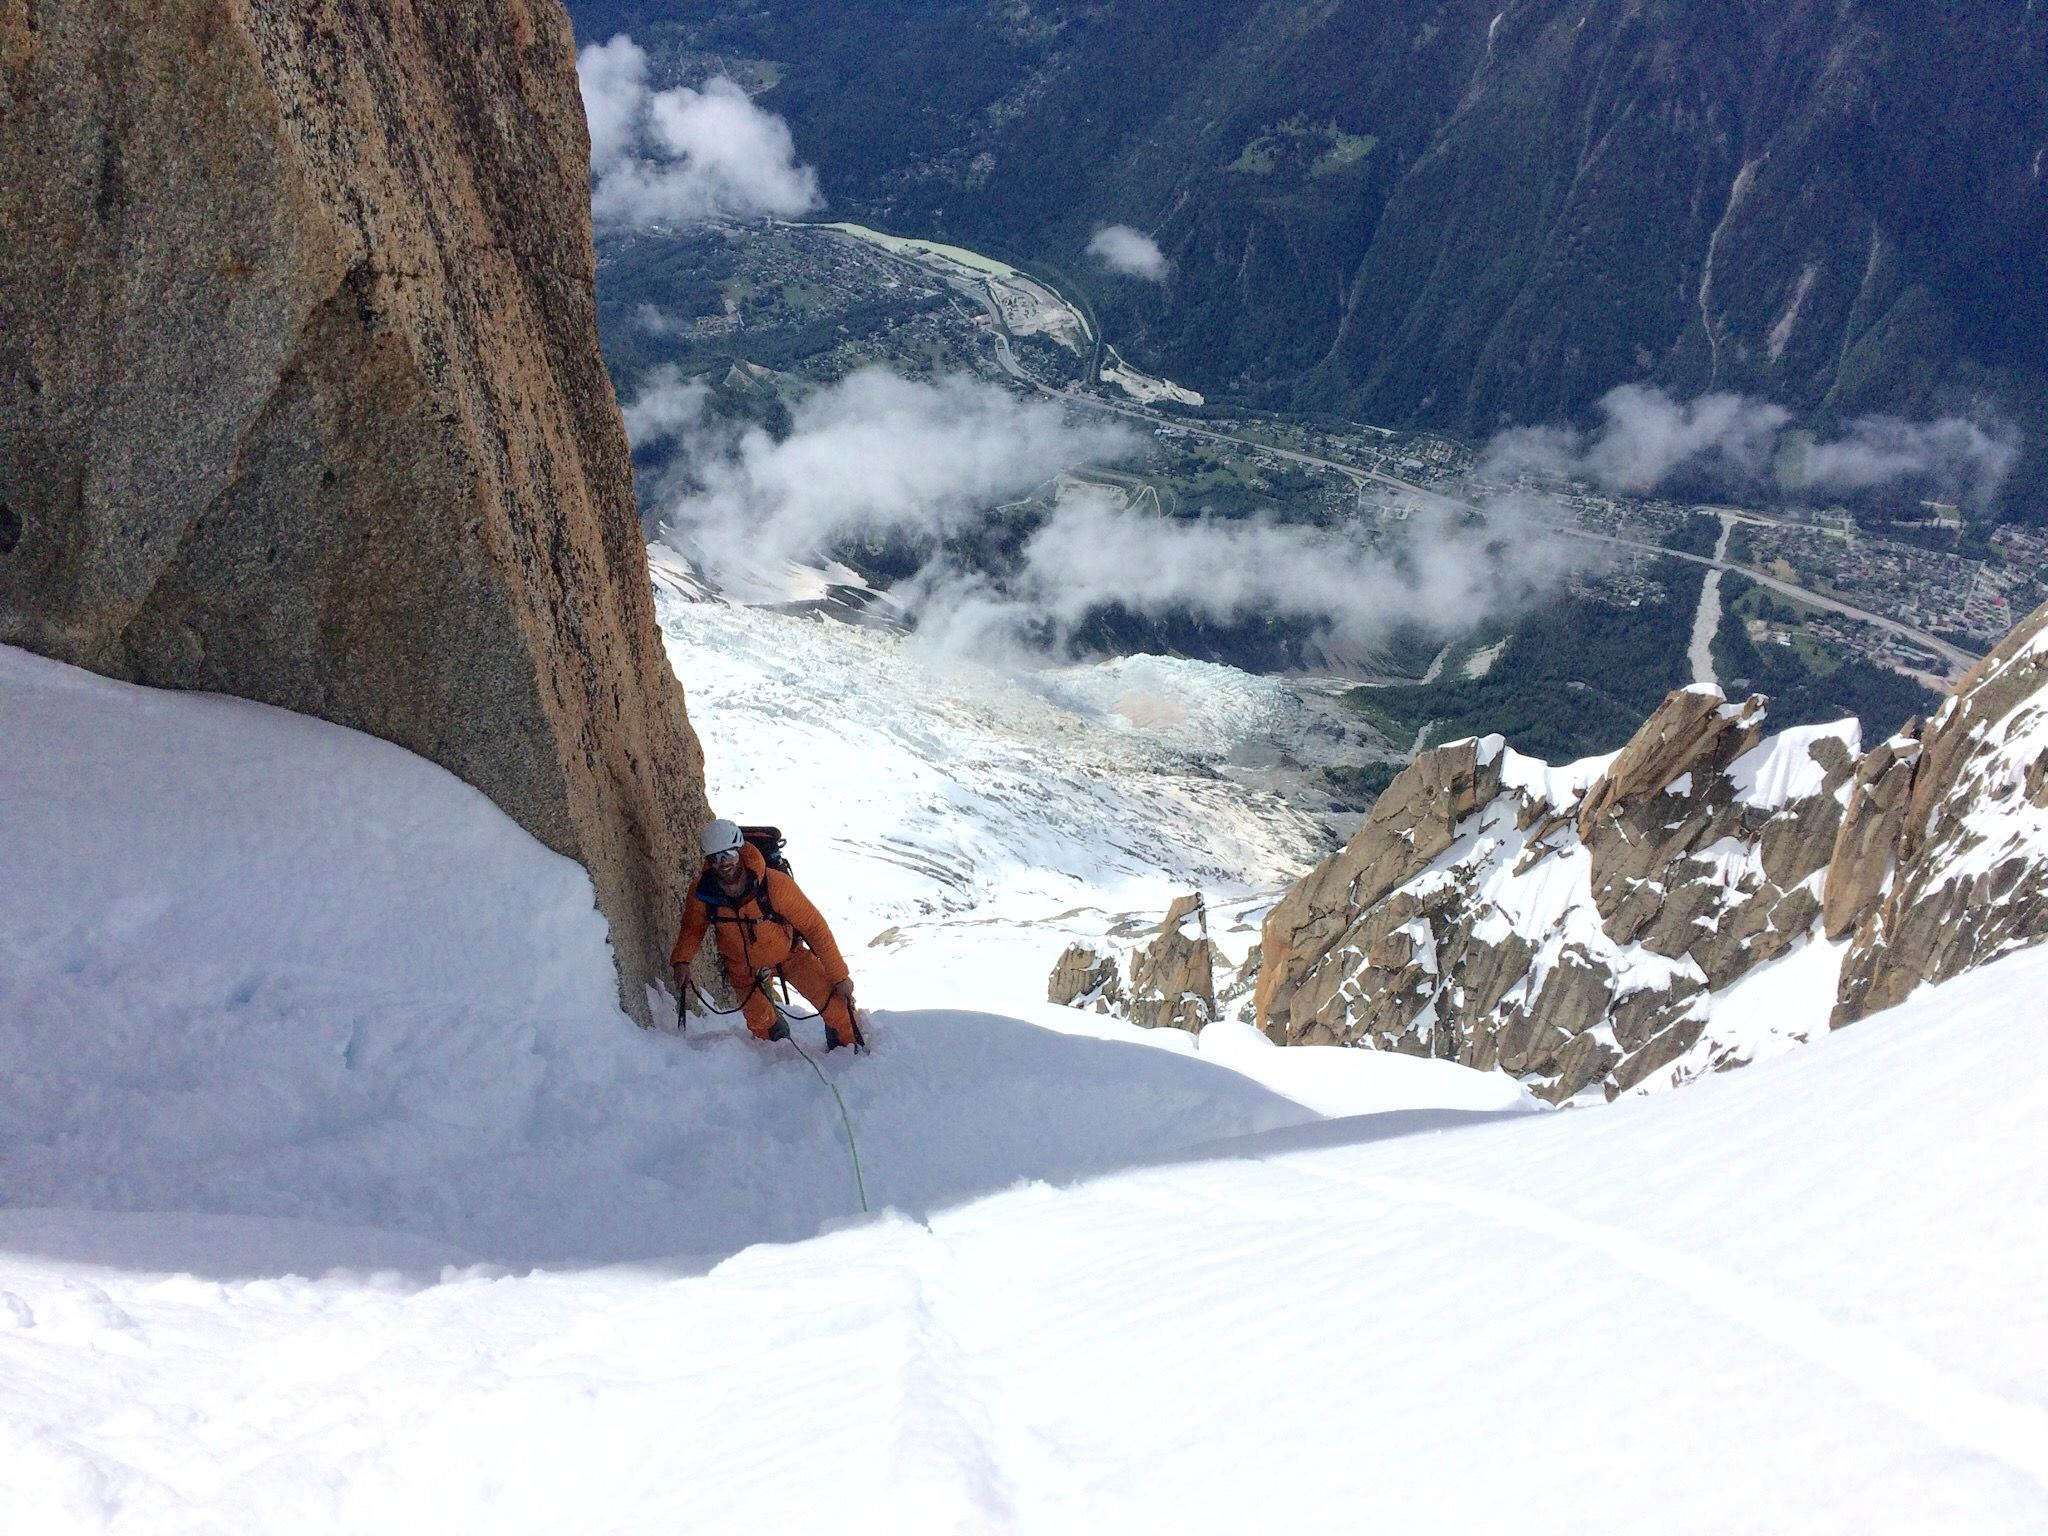 Mark Milburn climbing in Chamonix